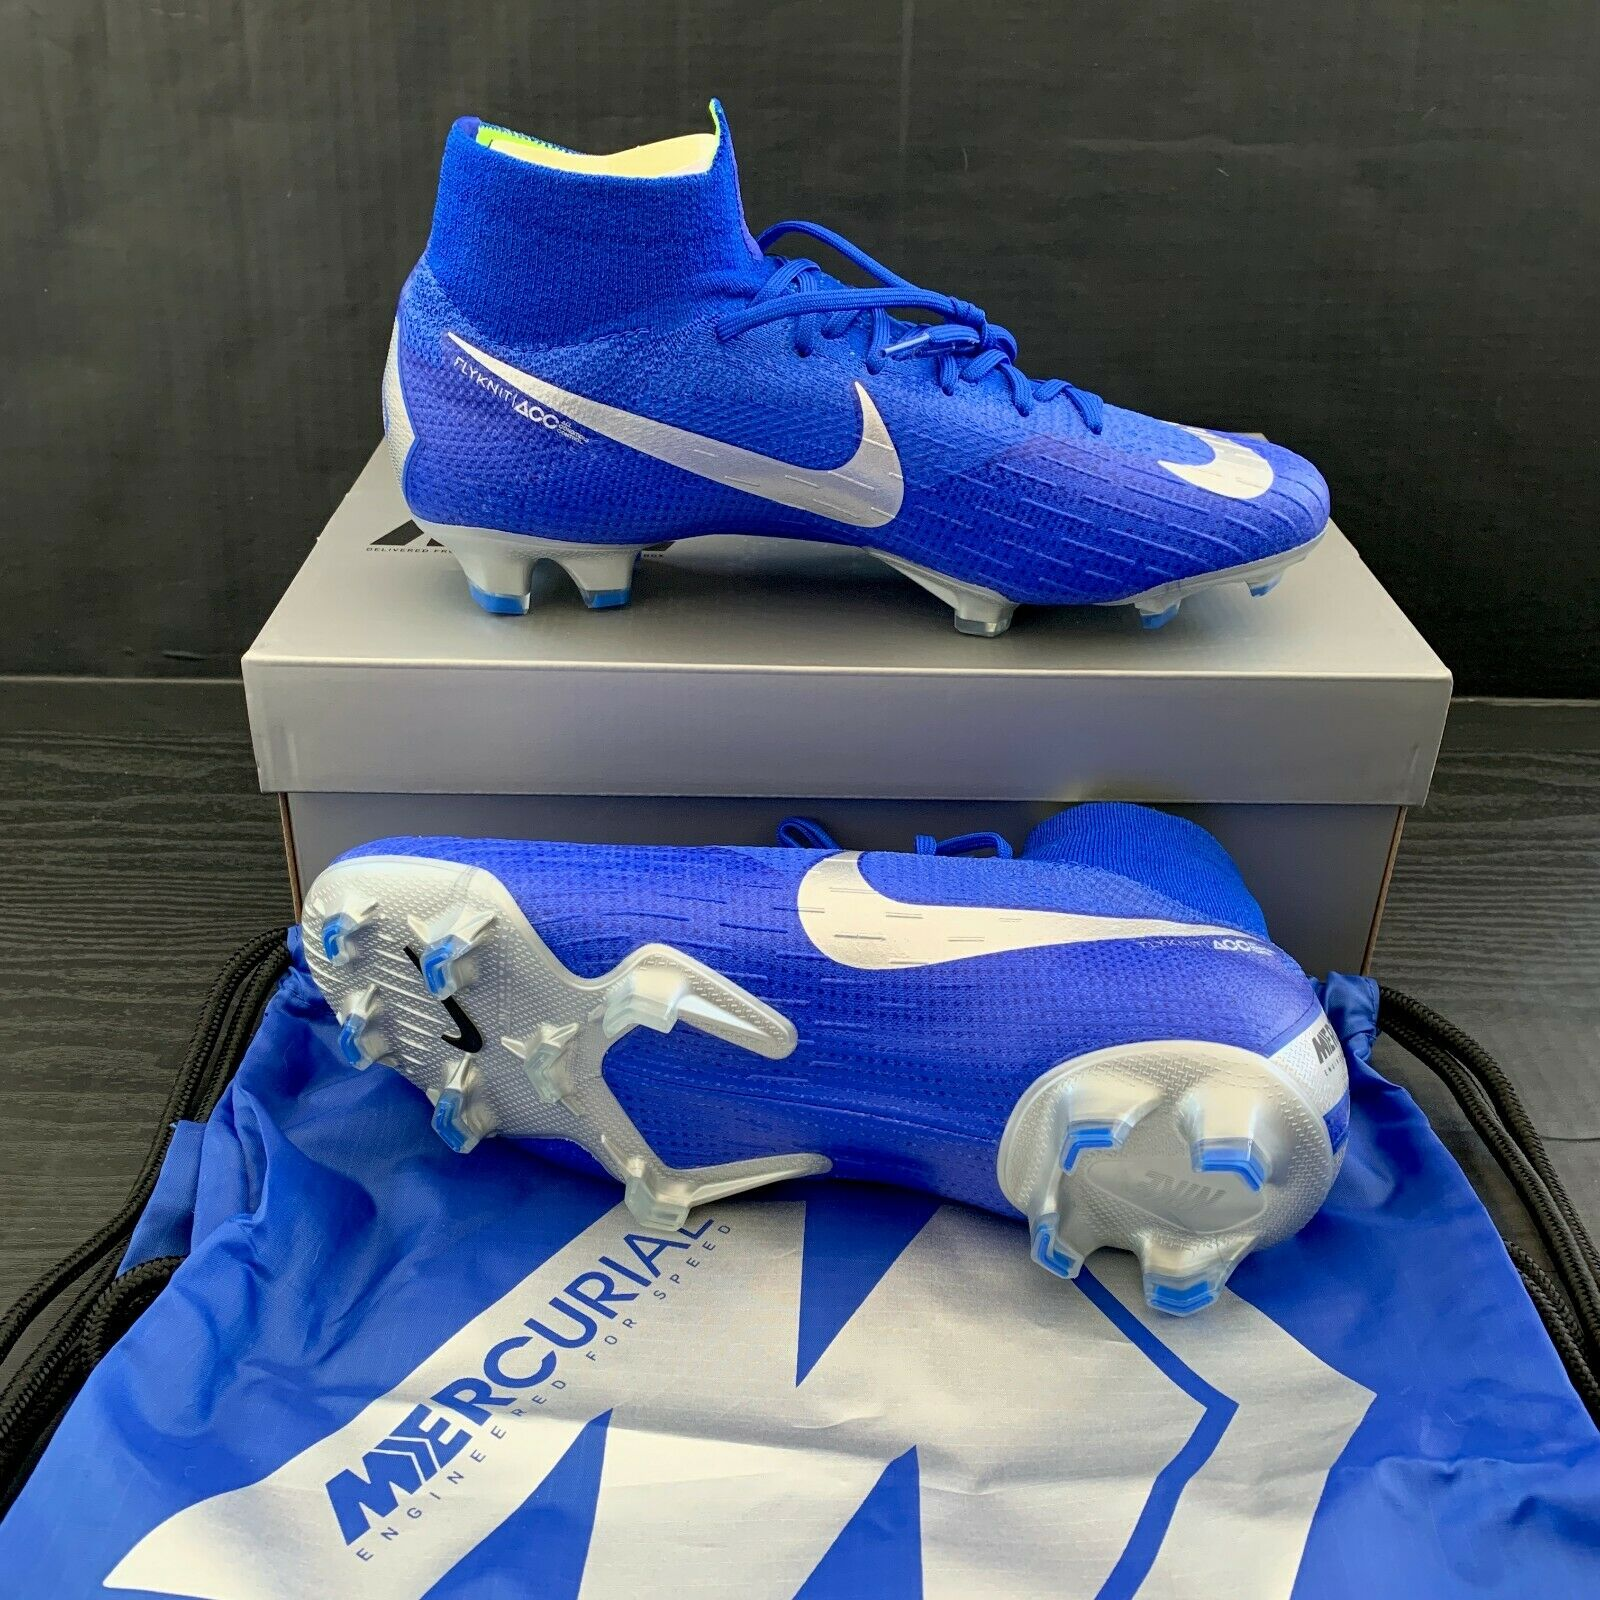 NIKE MERCURIAL SUPERFLY 360 ELITE FG blueE SOCCER CLEATS SIZE 9.5 (AH7365-400)